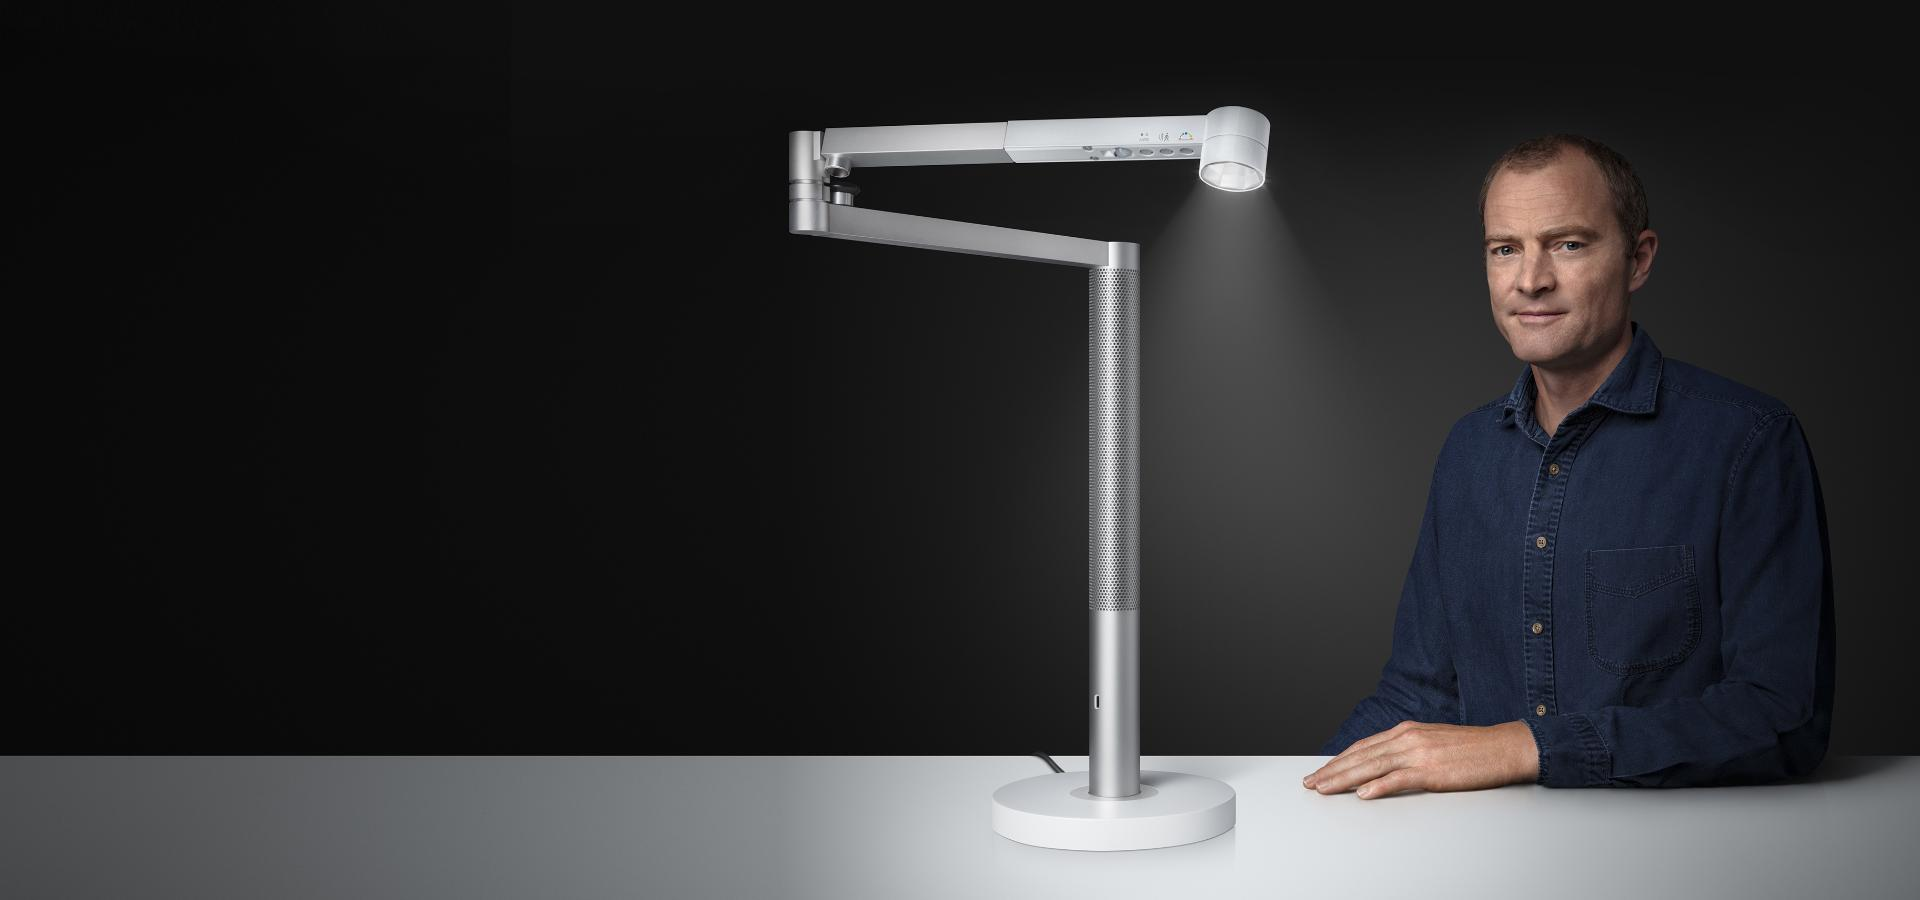 Jake Dyson sitting next to the Dyson Lightcycle Morph light